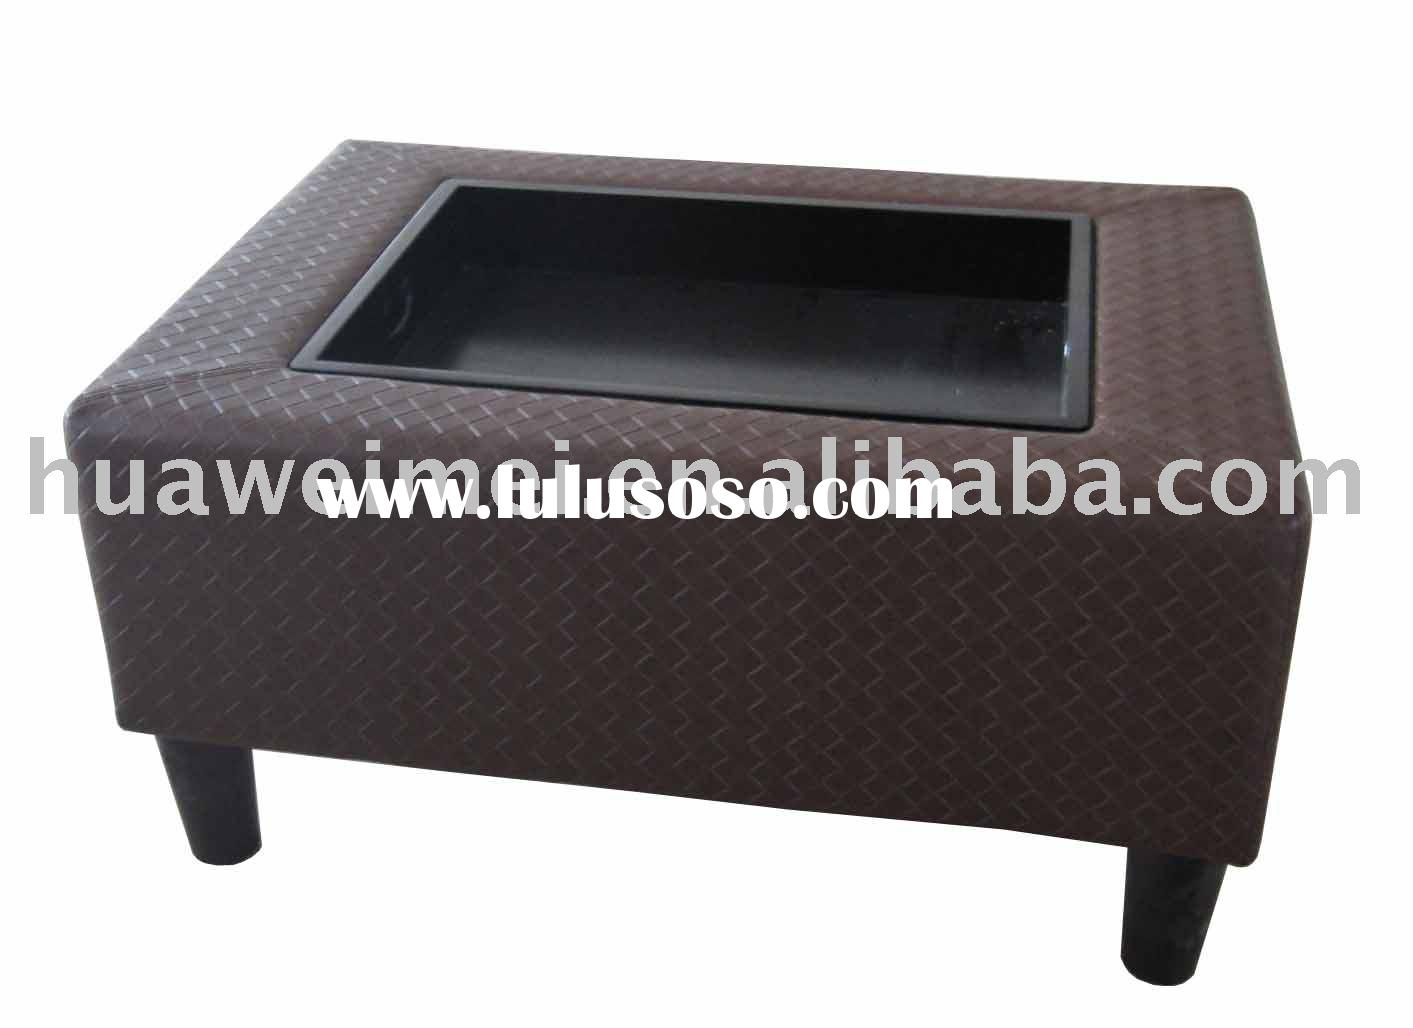 Hotel furniture, Guest room furniture, Standard room furniture, Bedroom furniture